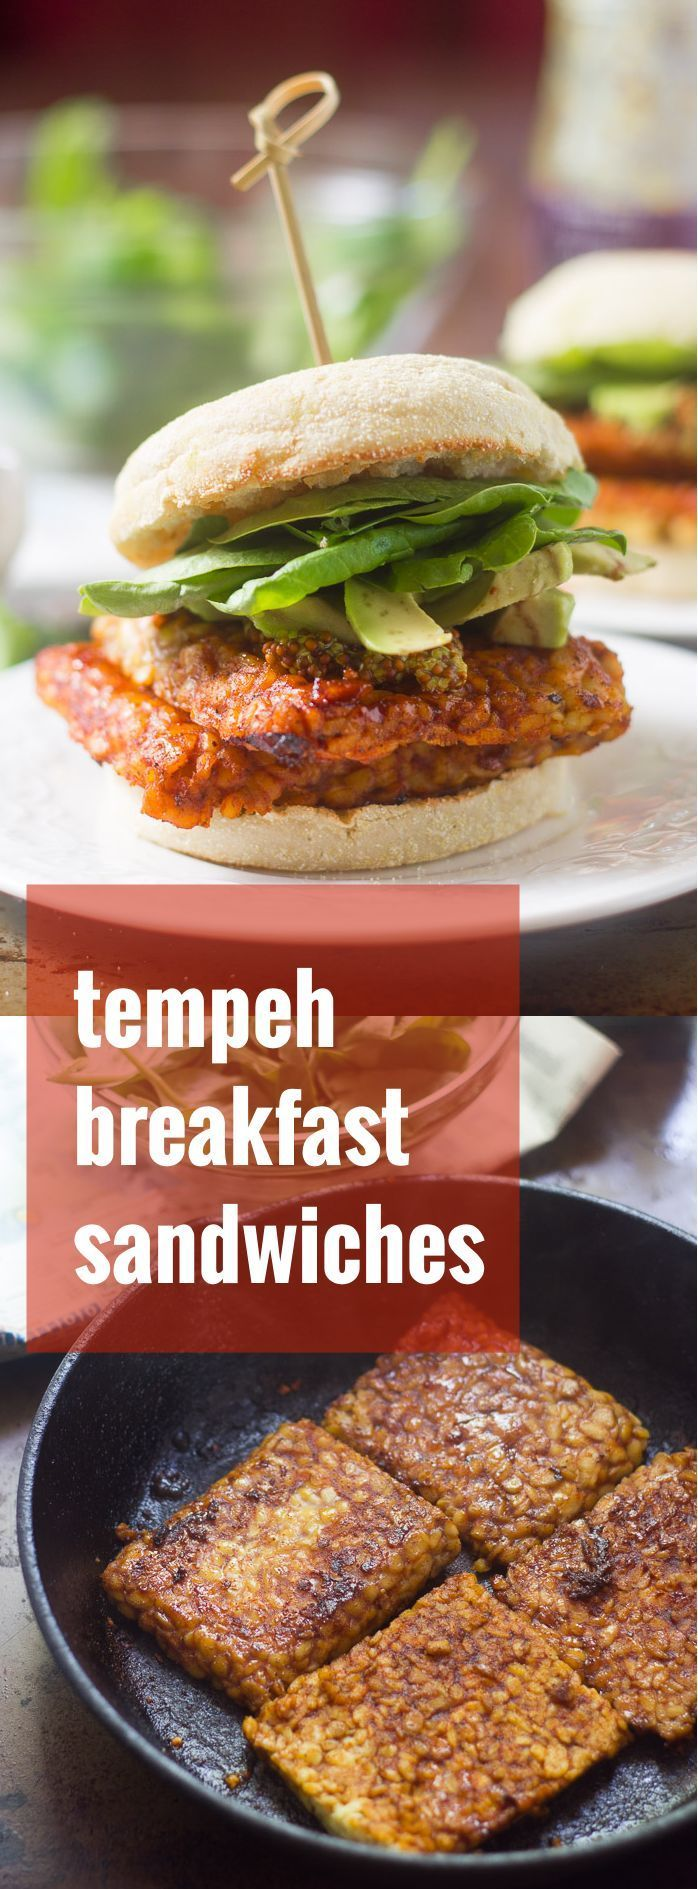 These tempeh breakfast sandwiches are made with pan-fried tempeh in a savory sauce, stuffed in an English muffin and piled with avocado and baby spinach.